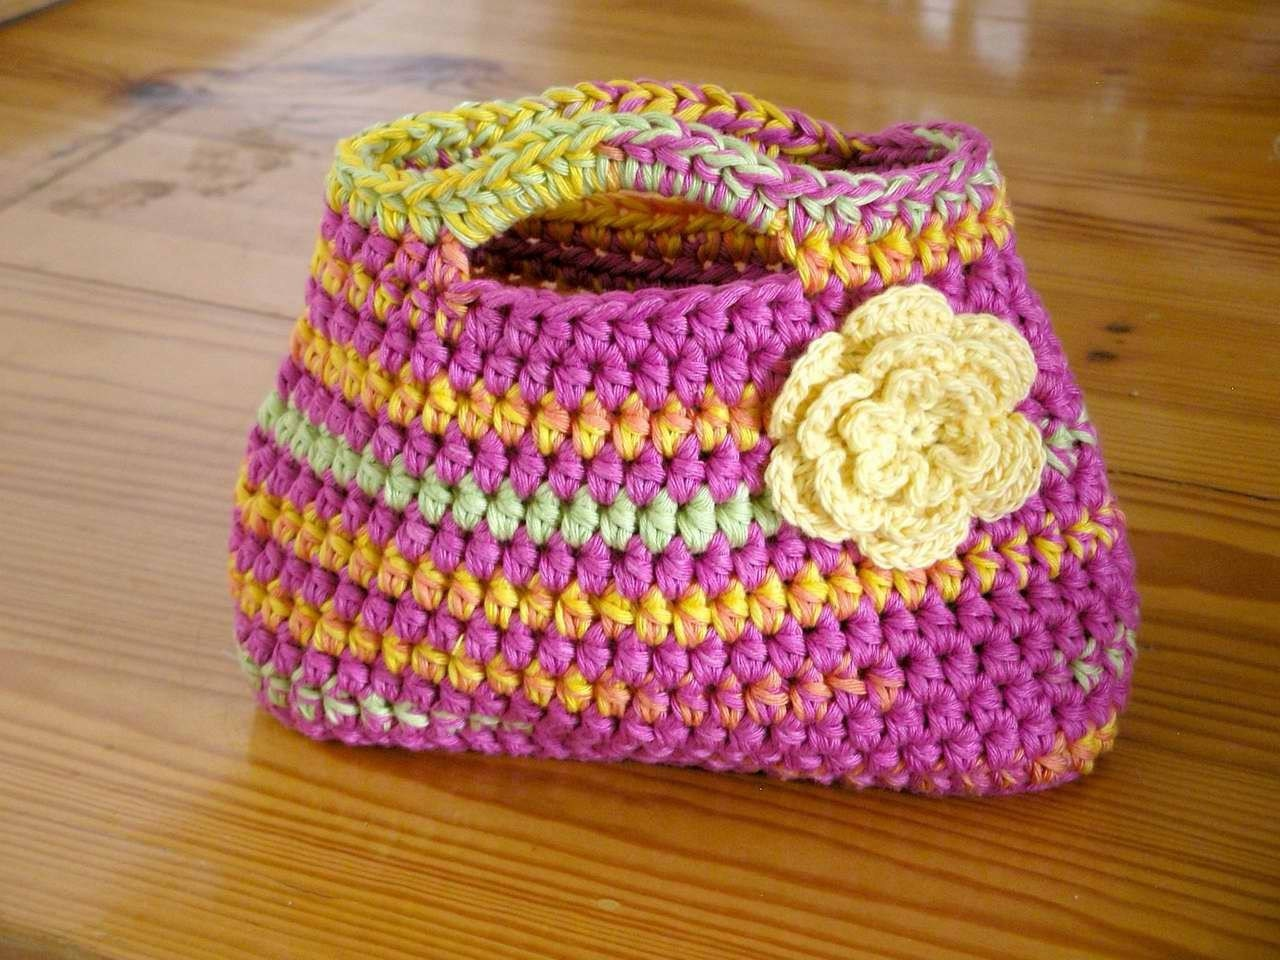 Toddler Crochet Purse Pattern : Handbag Crochet Pattern Easy Peasy Little Kids Bag Crochet